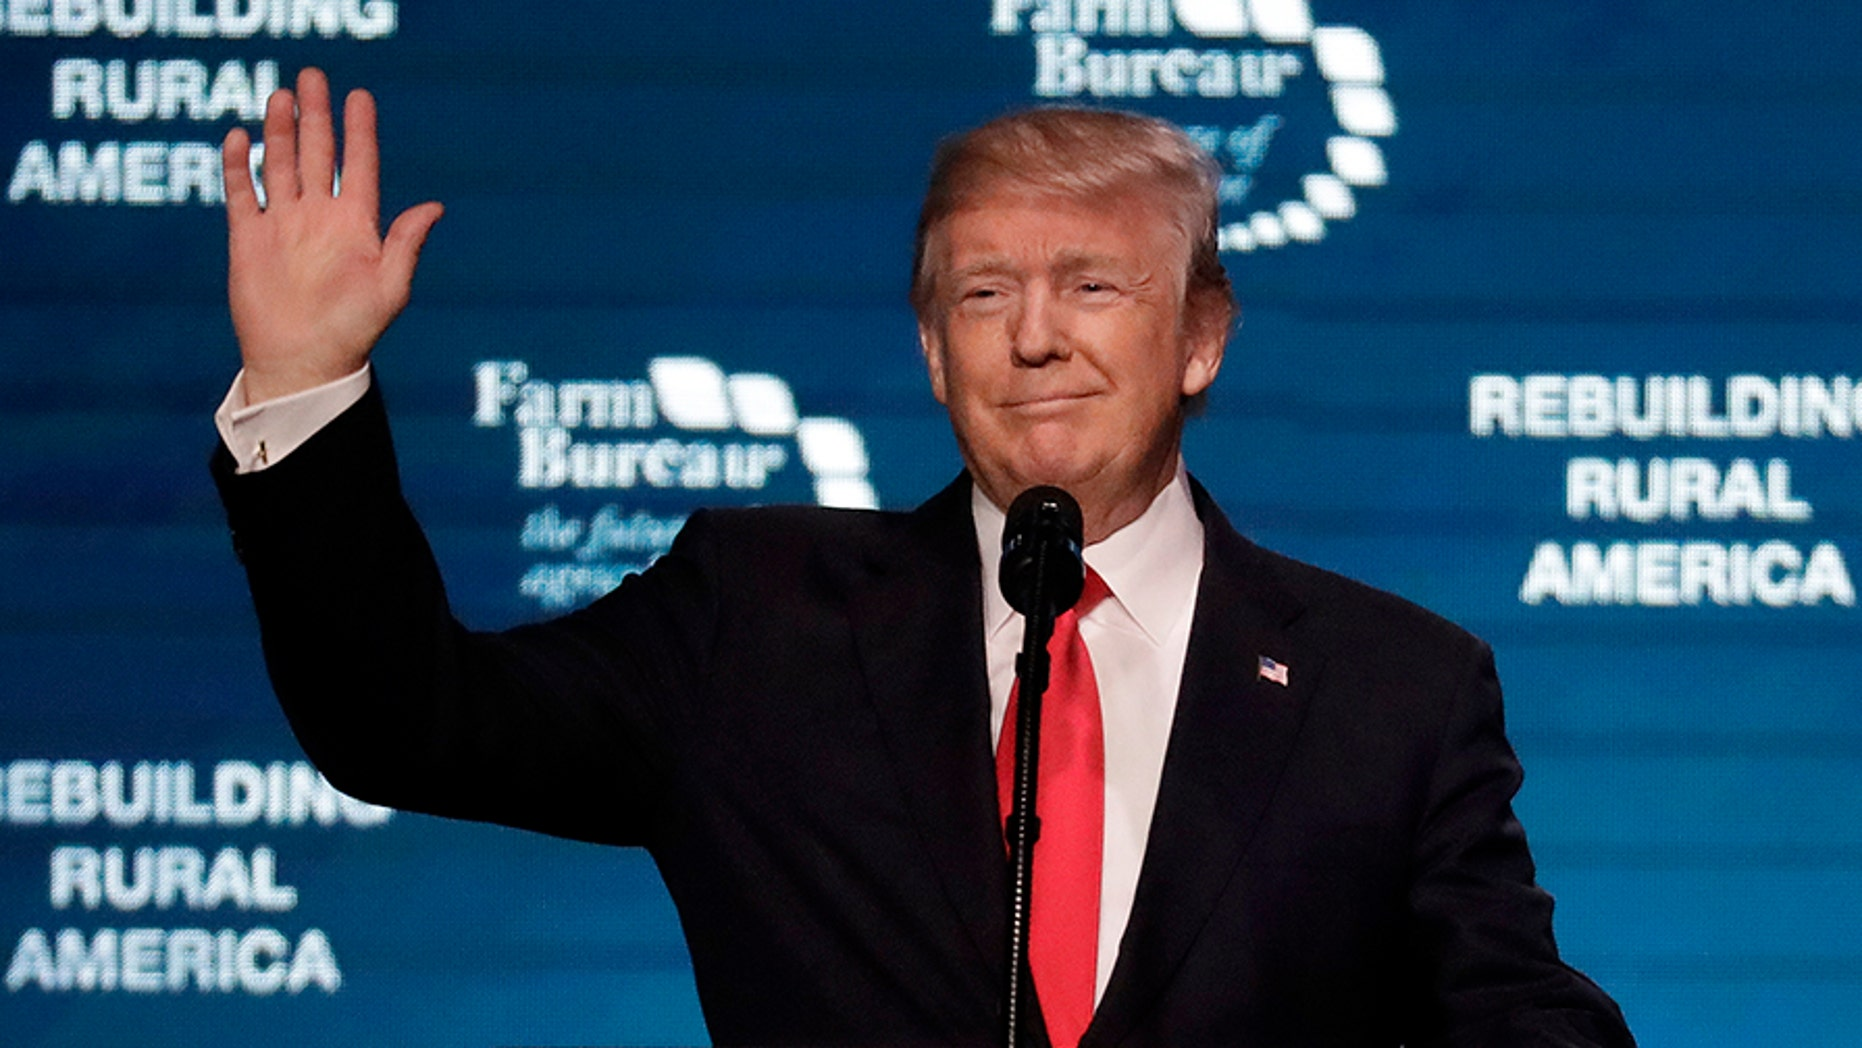 President Donald Trump waves as he speaks at the American Farm Bureau Federation annual convention Monday, Jan. 8, 2018, in Nashville, Tenn.